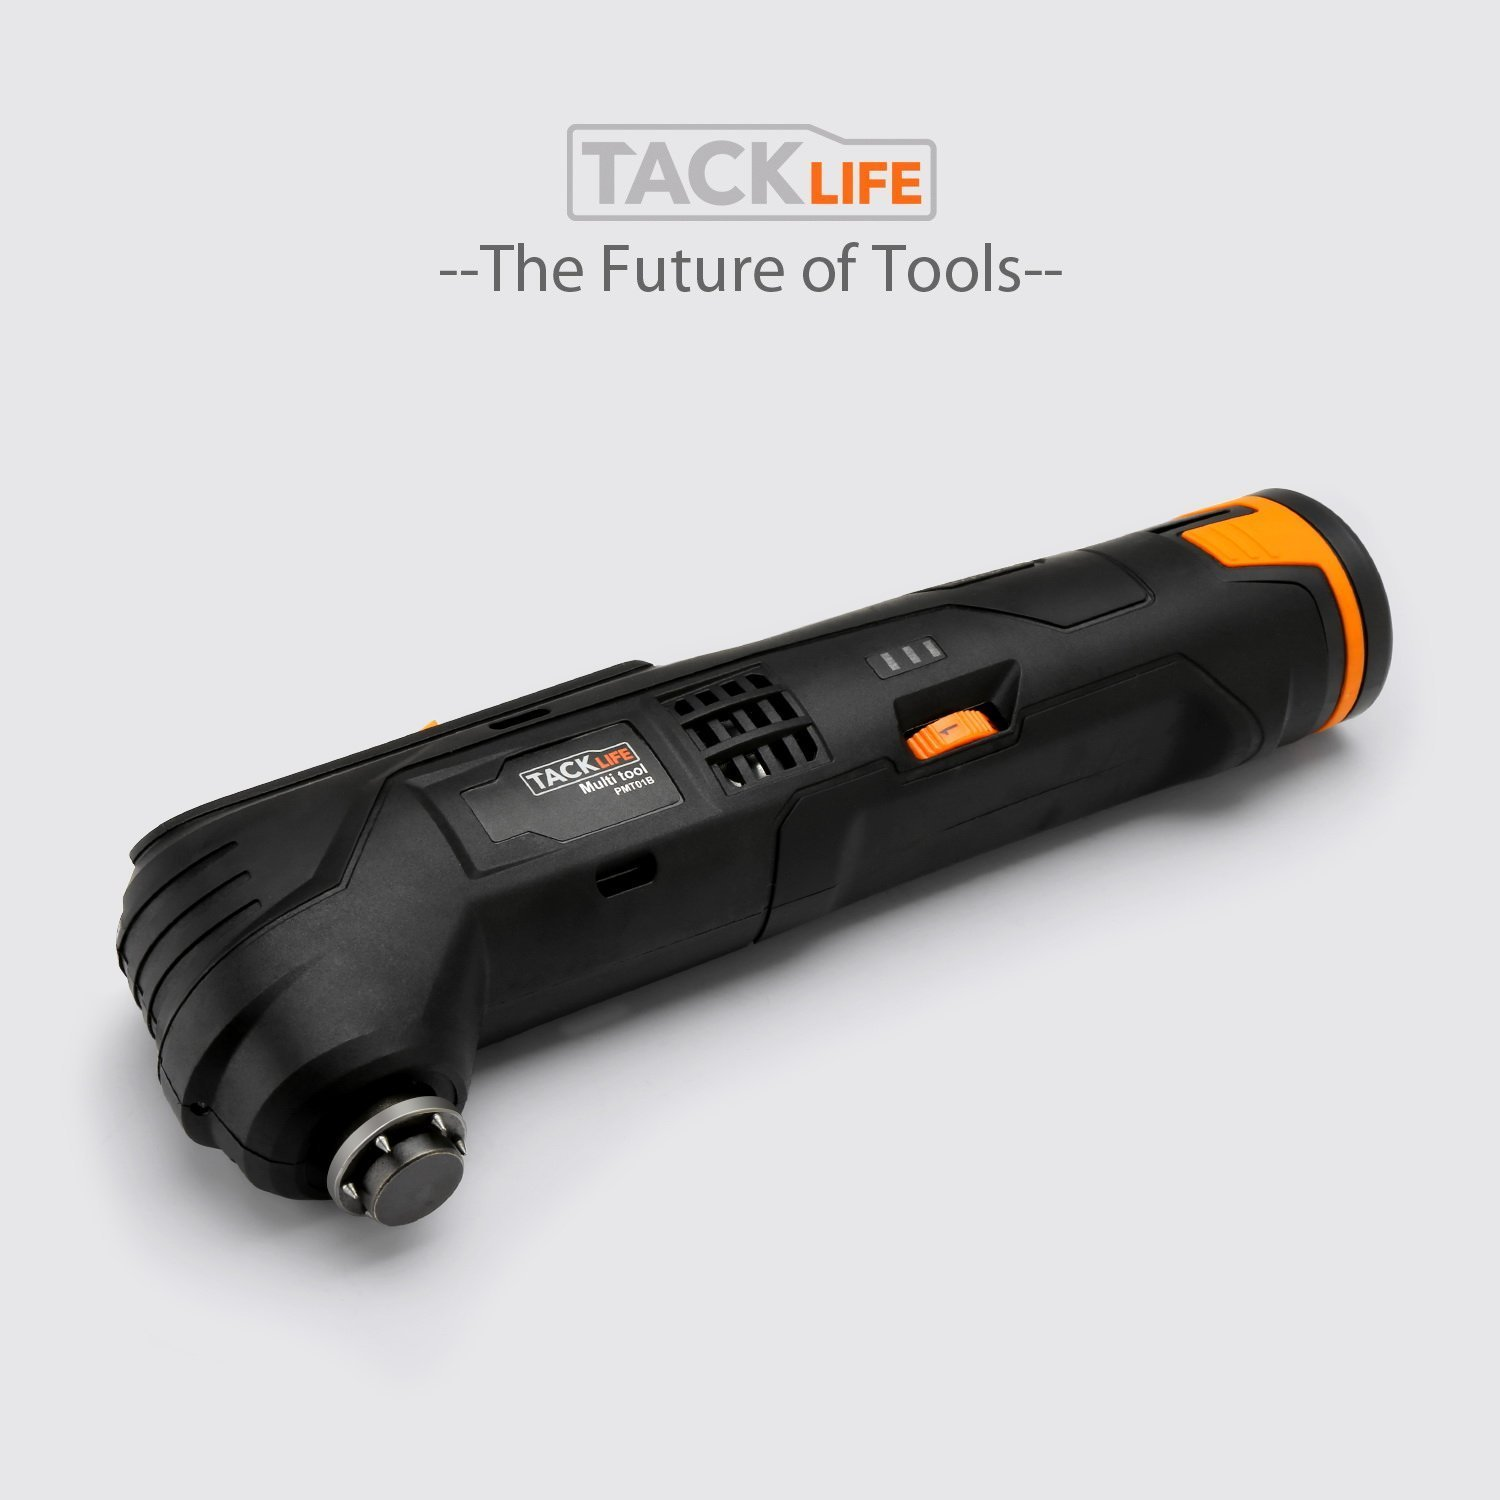 Tacklife 12V Oscillating Tool, 6 Variable Speed Lithium-Ion Cordless Oscillating Multi-Tool with LED, 1 Hour Fast Charge, Great for Sanding Polishing Cutting Scraping Cleaning, 23pcs Accessories